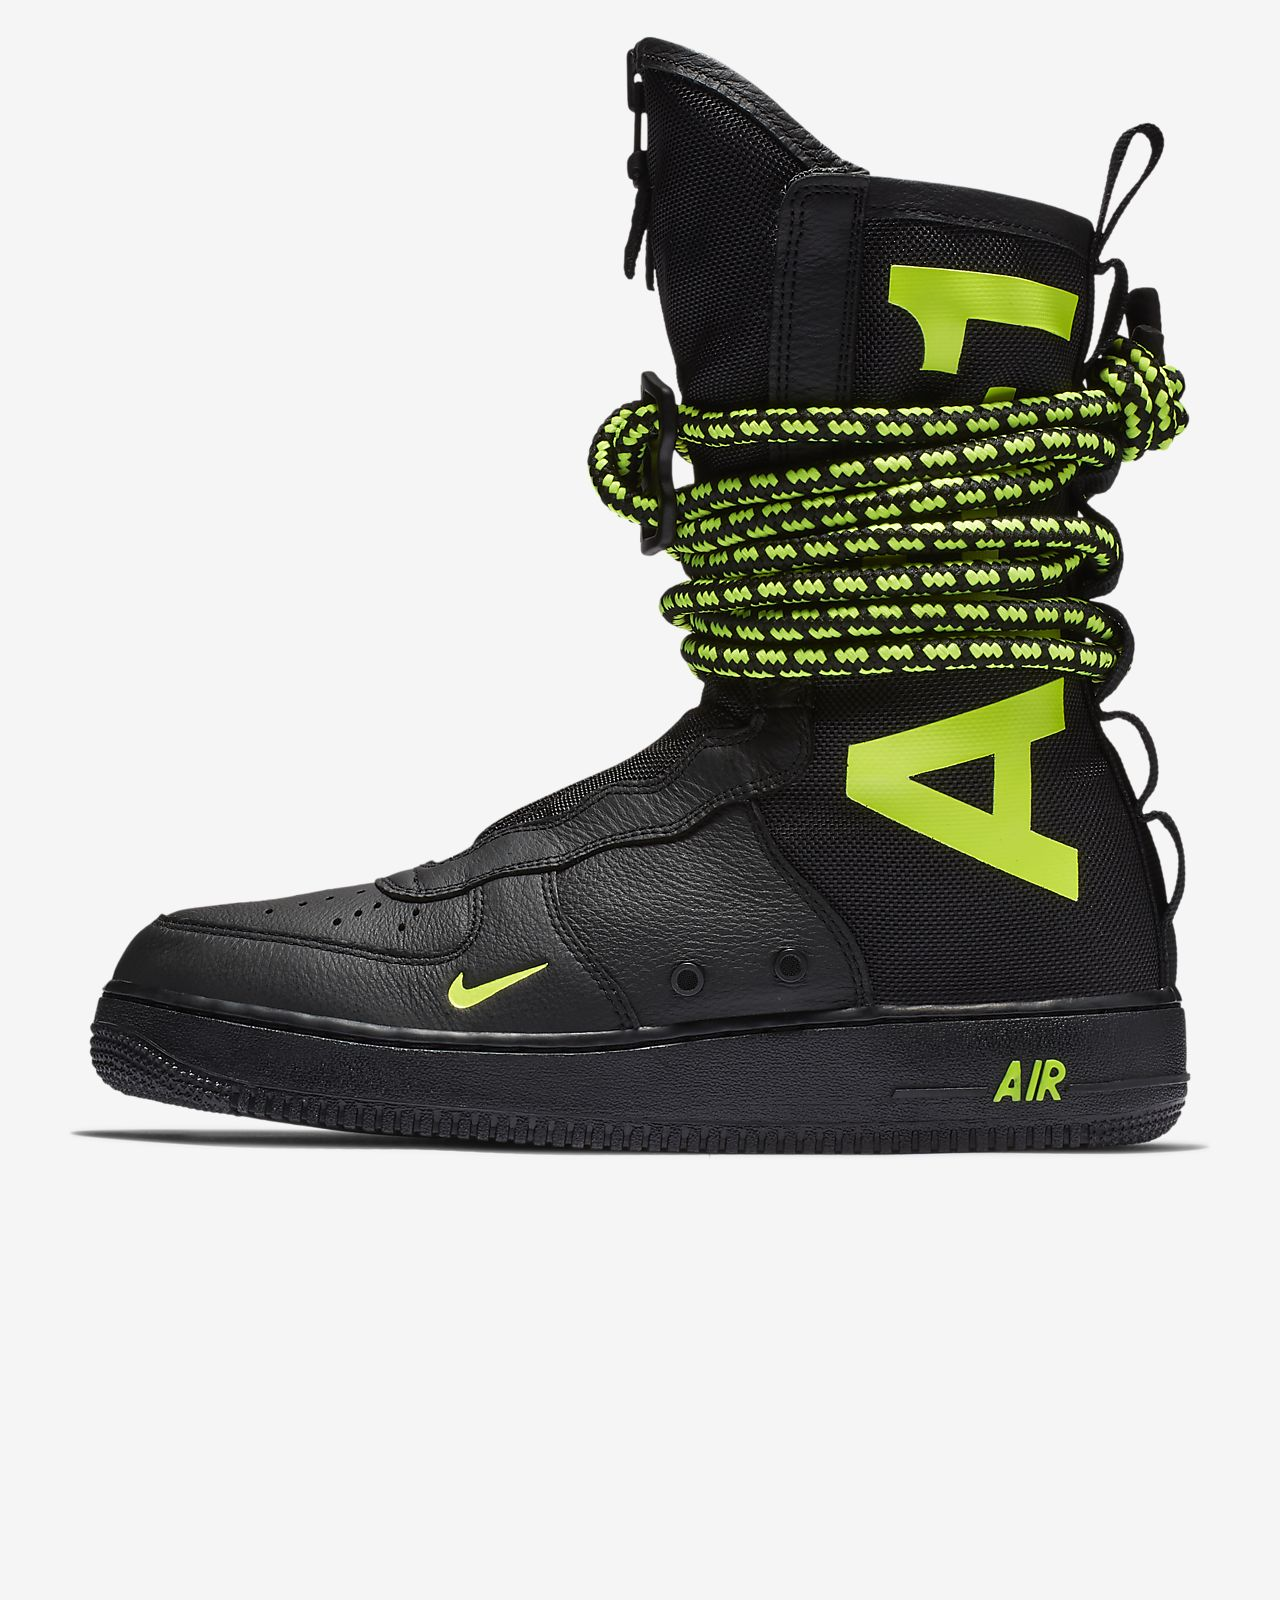 To acquire Force air nike 1 high top black pictures trends